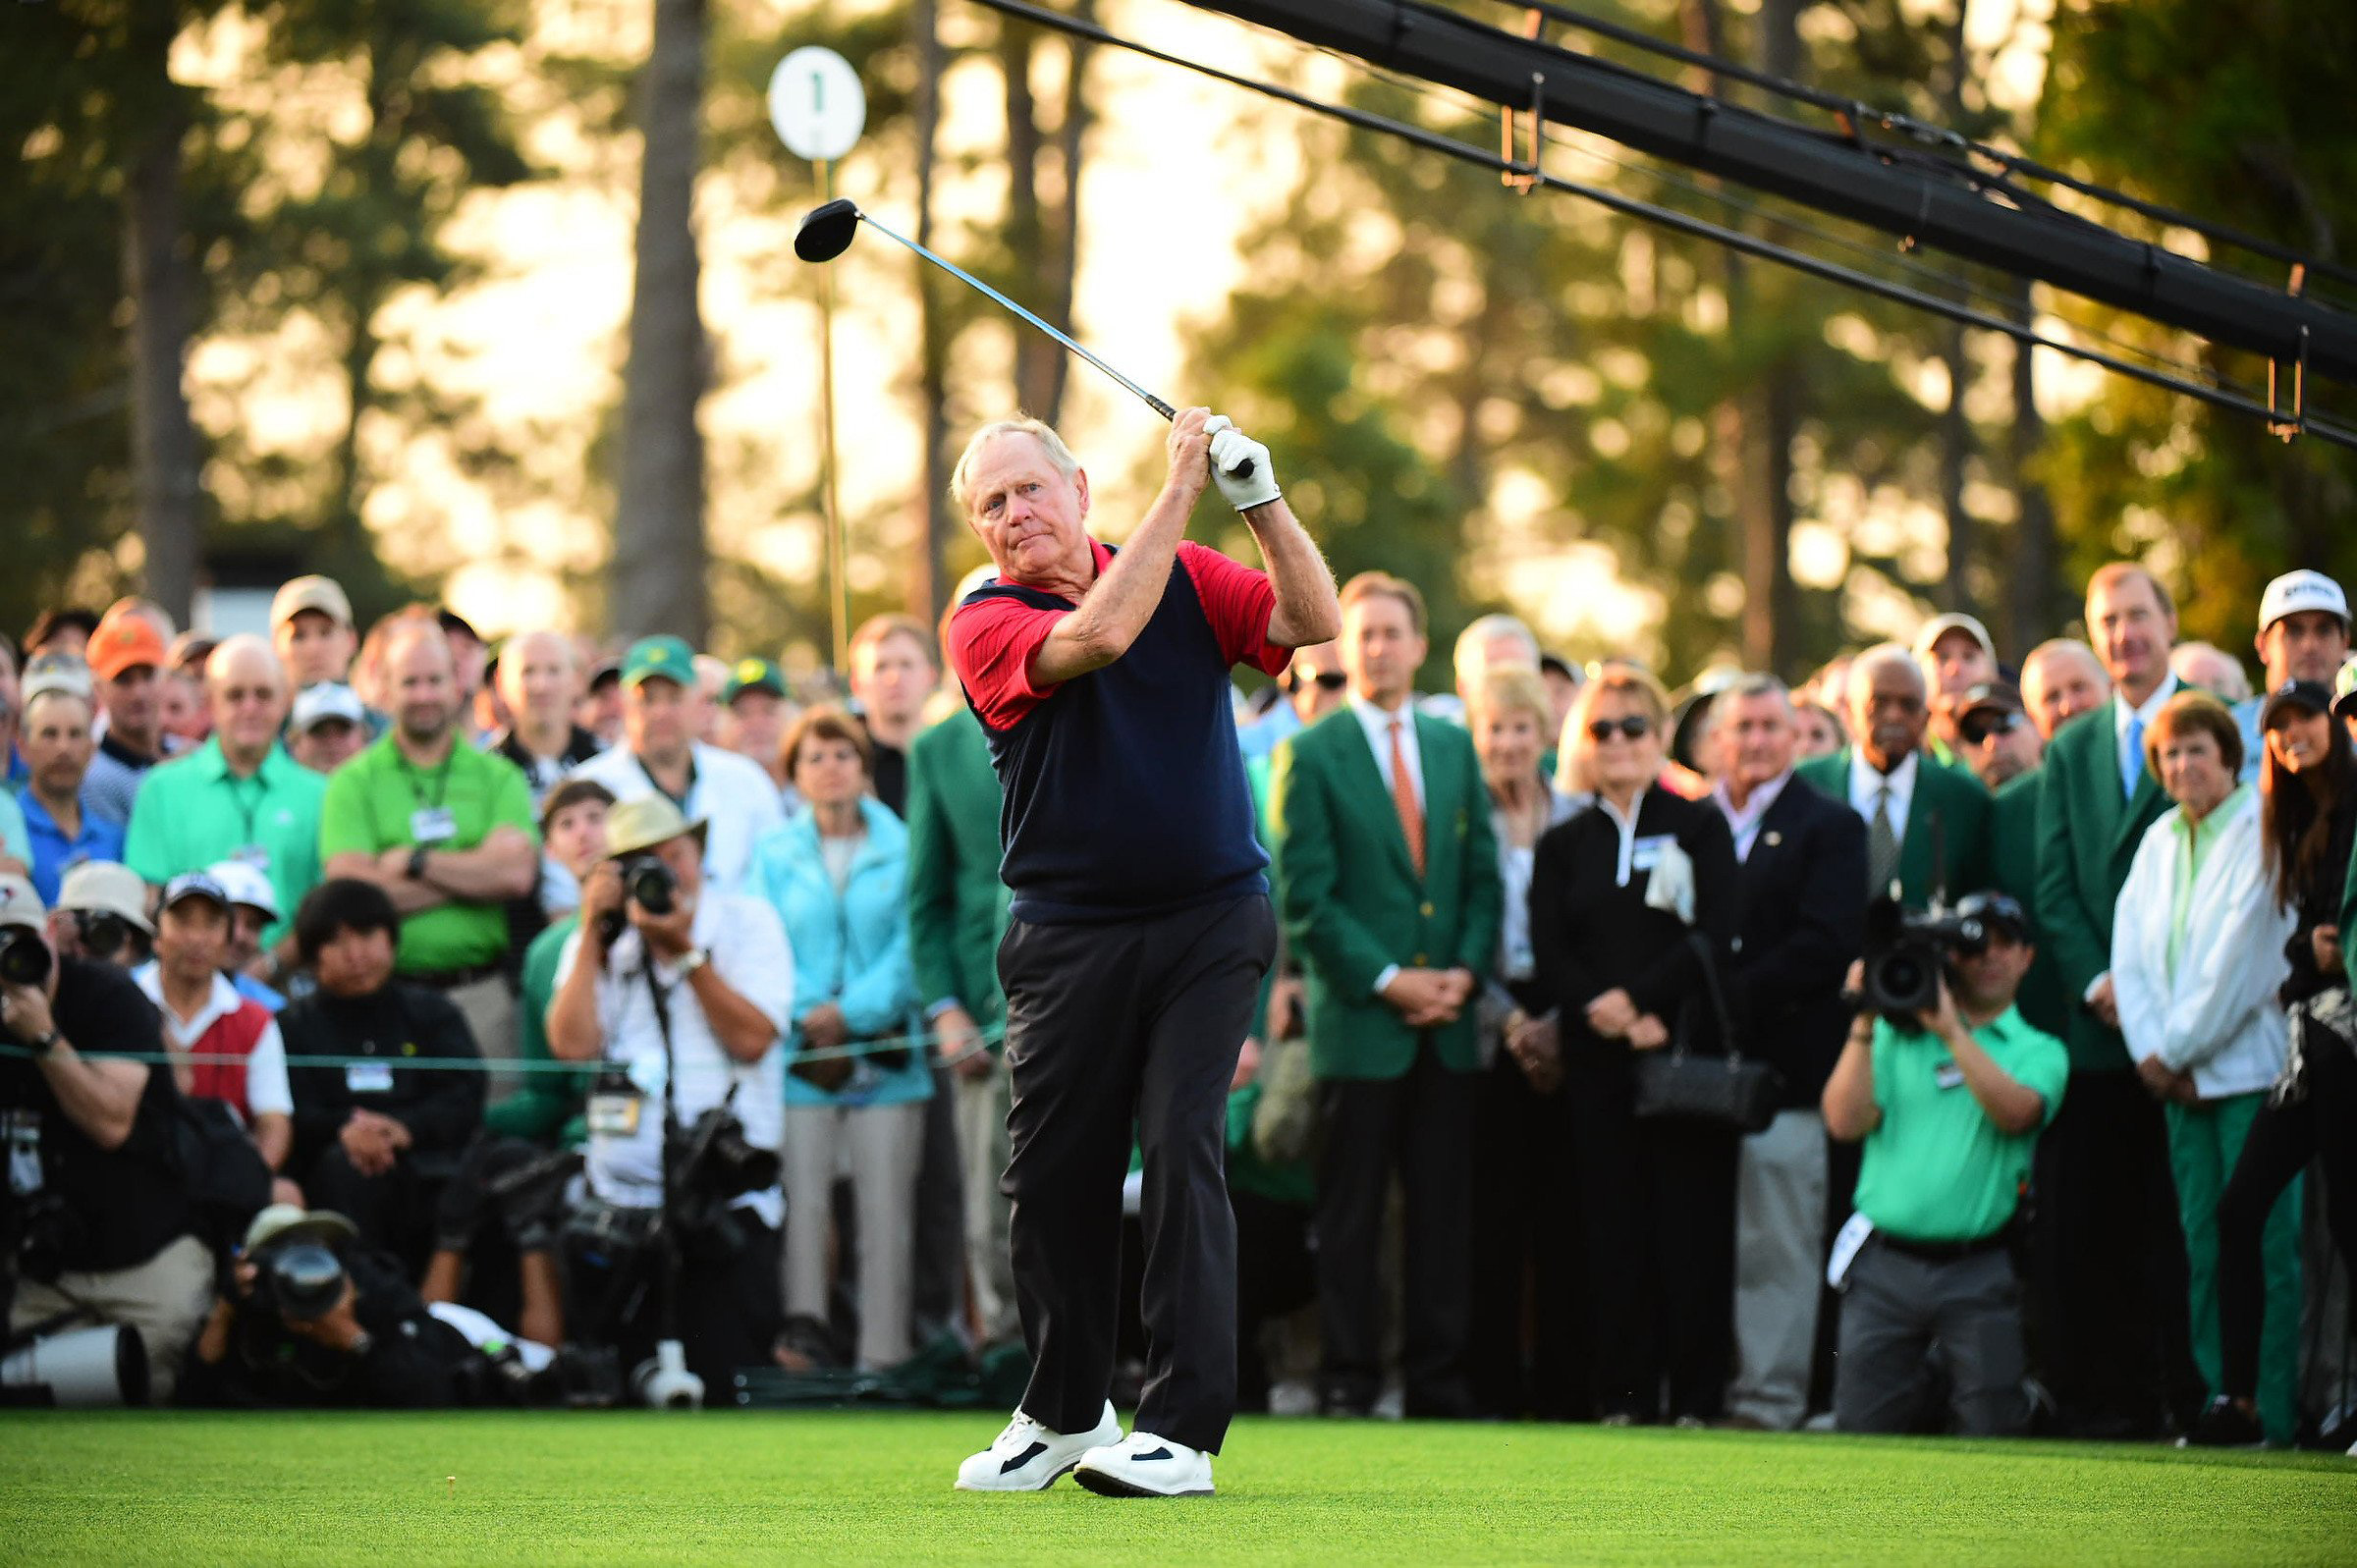 Jack Nicklaus says the Big Three are still competitive about who hits the longest tee shot. Player had the slight edge on Thursday.